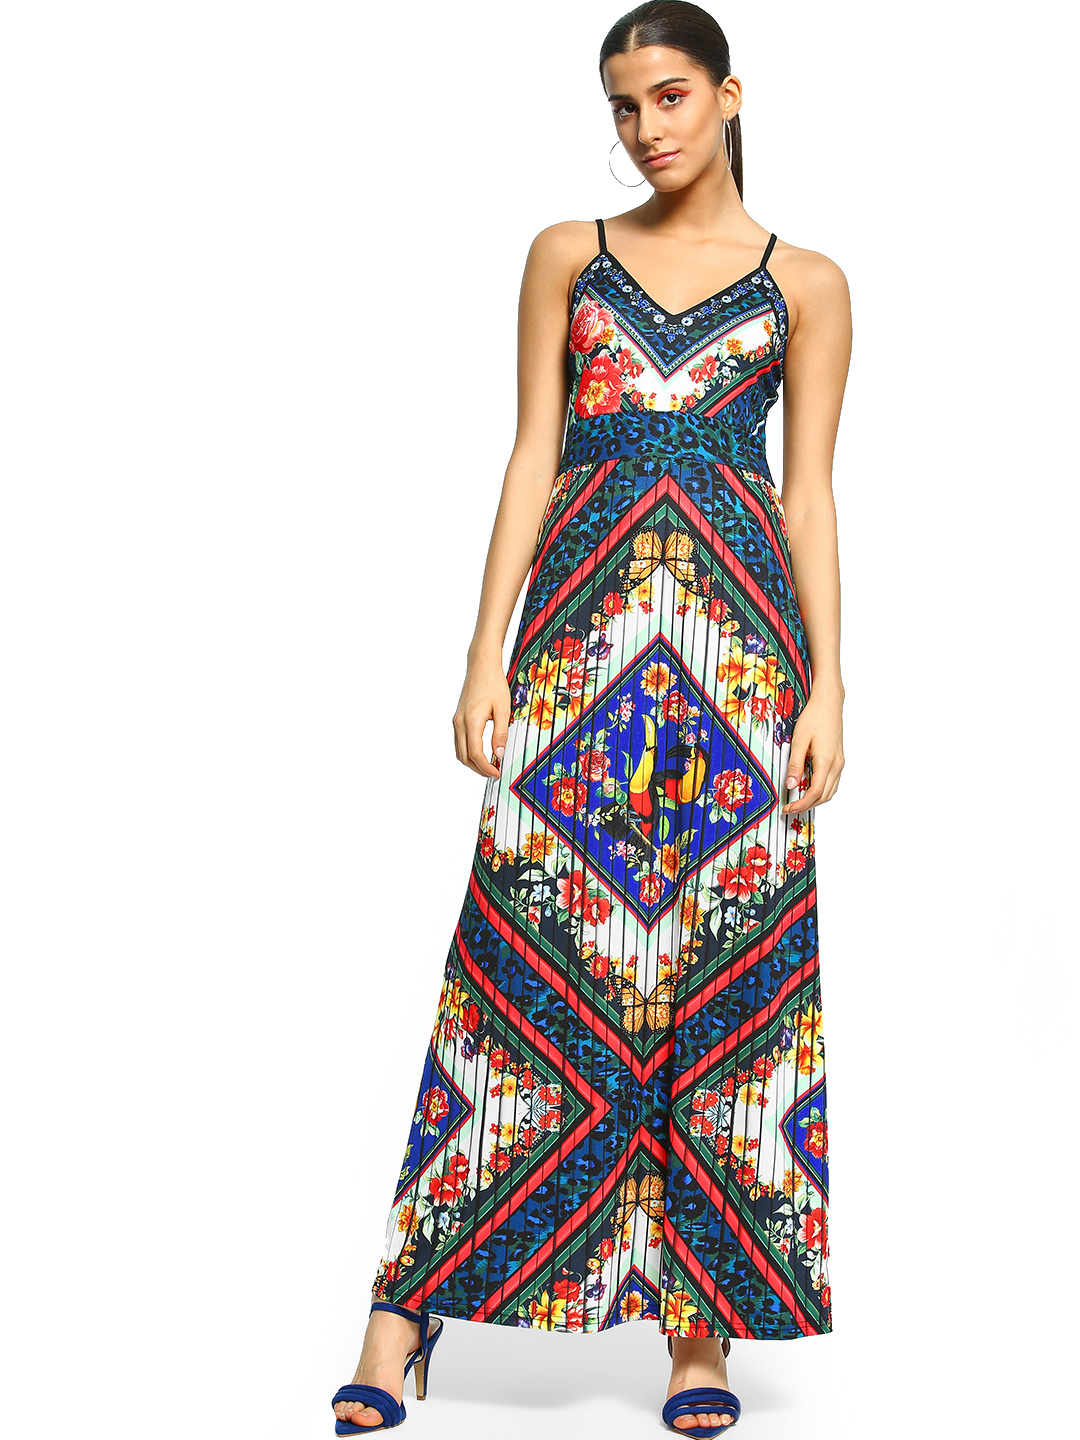 101 IDEES Multi Floral Animal Print Strappy Maxi Dress 1